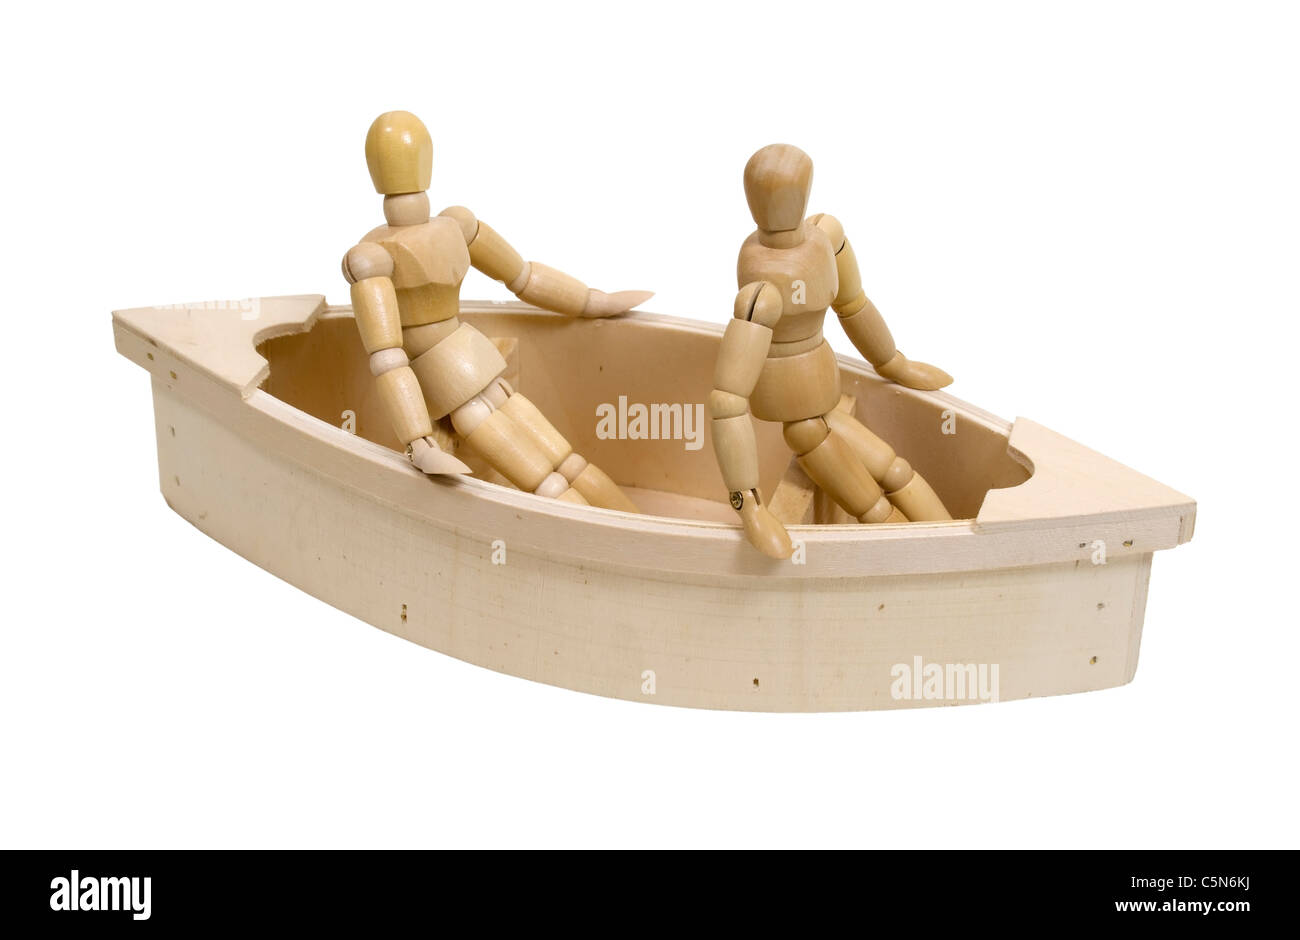 Wooden models representing people relaxing in a boat - path included - Stock Image